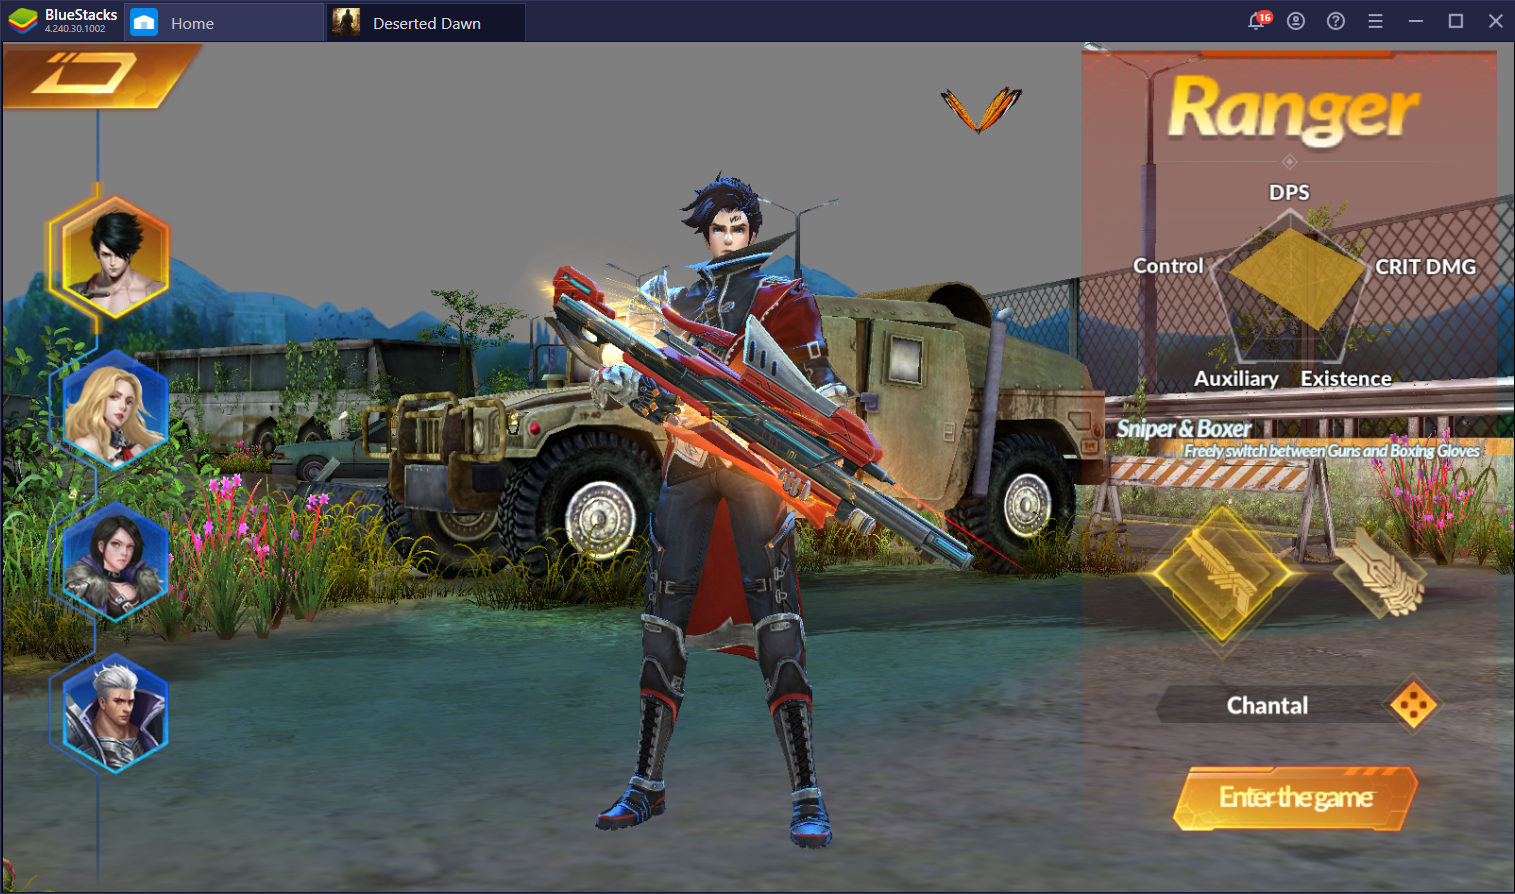 Defend Your Home – How to Play Deserted Dawn on PC with BlueStacks